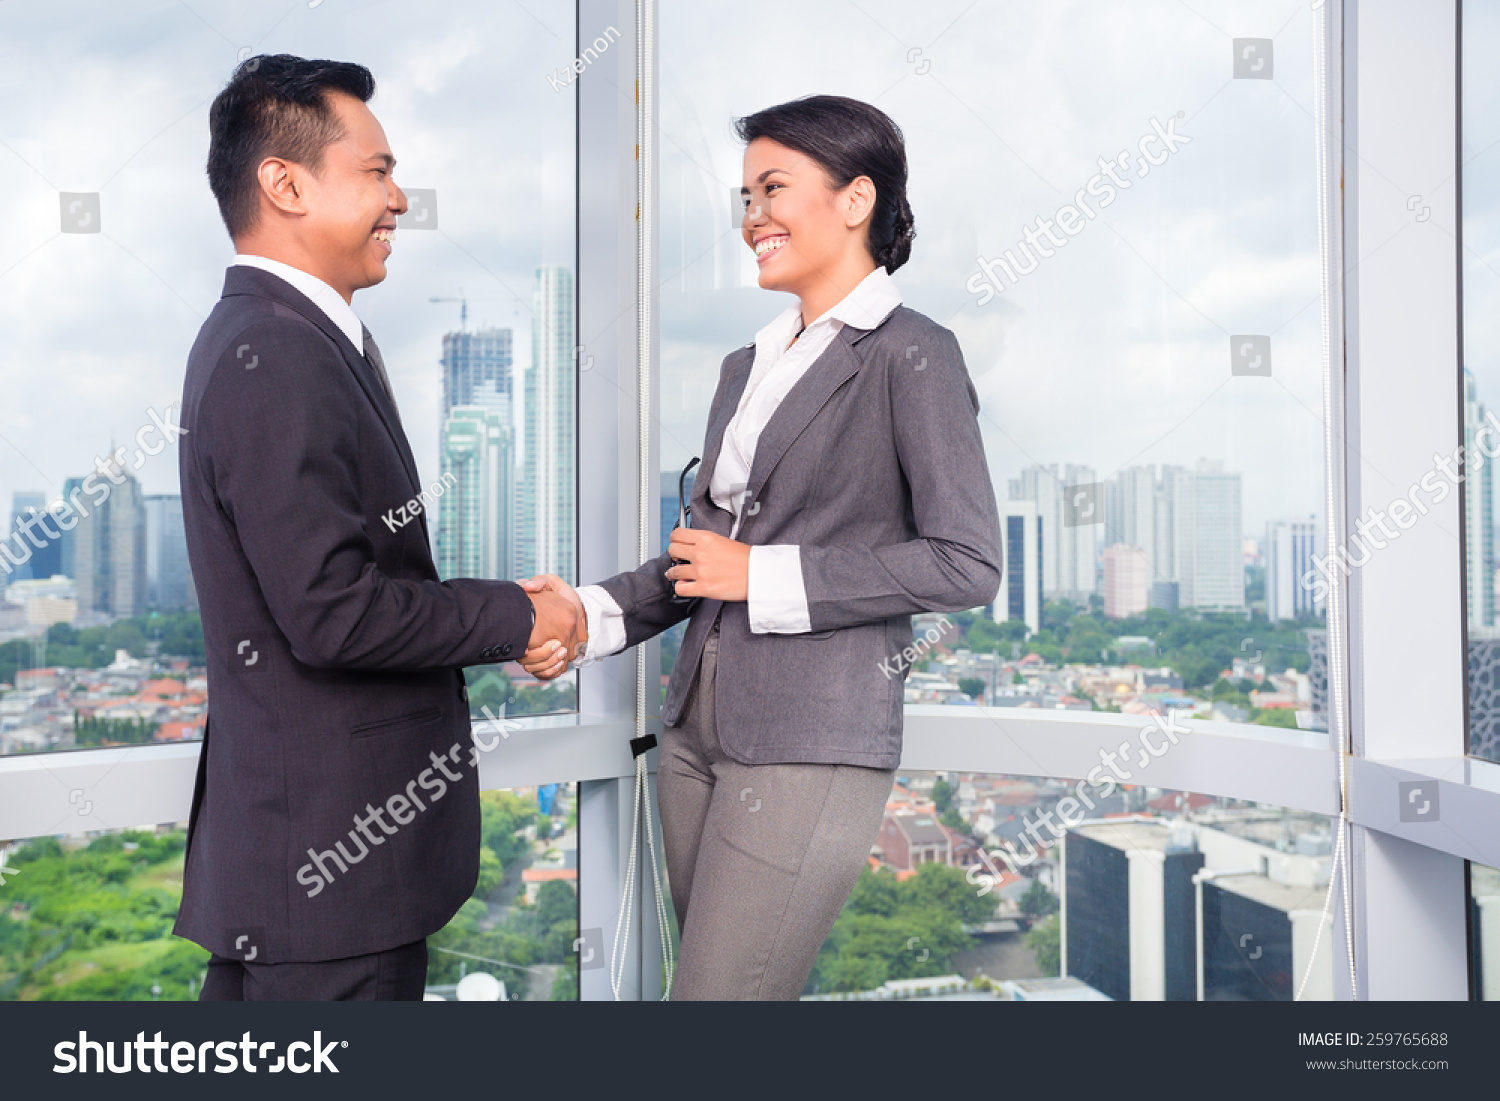 Business people handshake greeting deal at work photo free download - Business People Handshake To Seal Deal In Front Of City Skyline